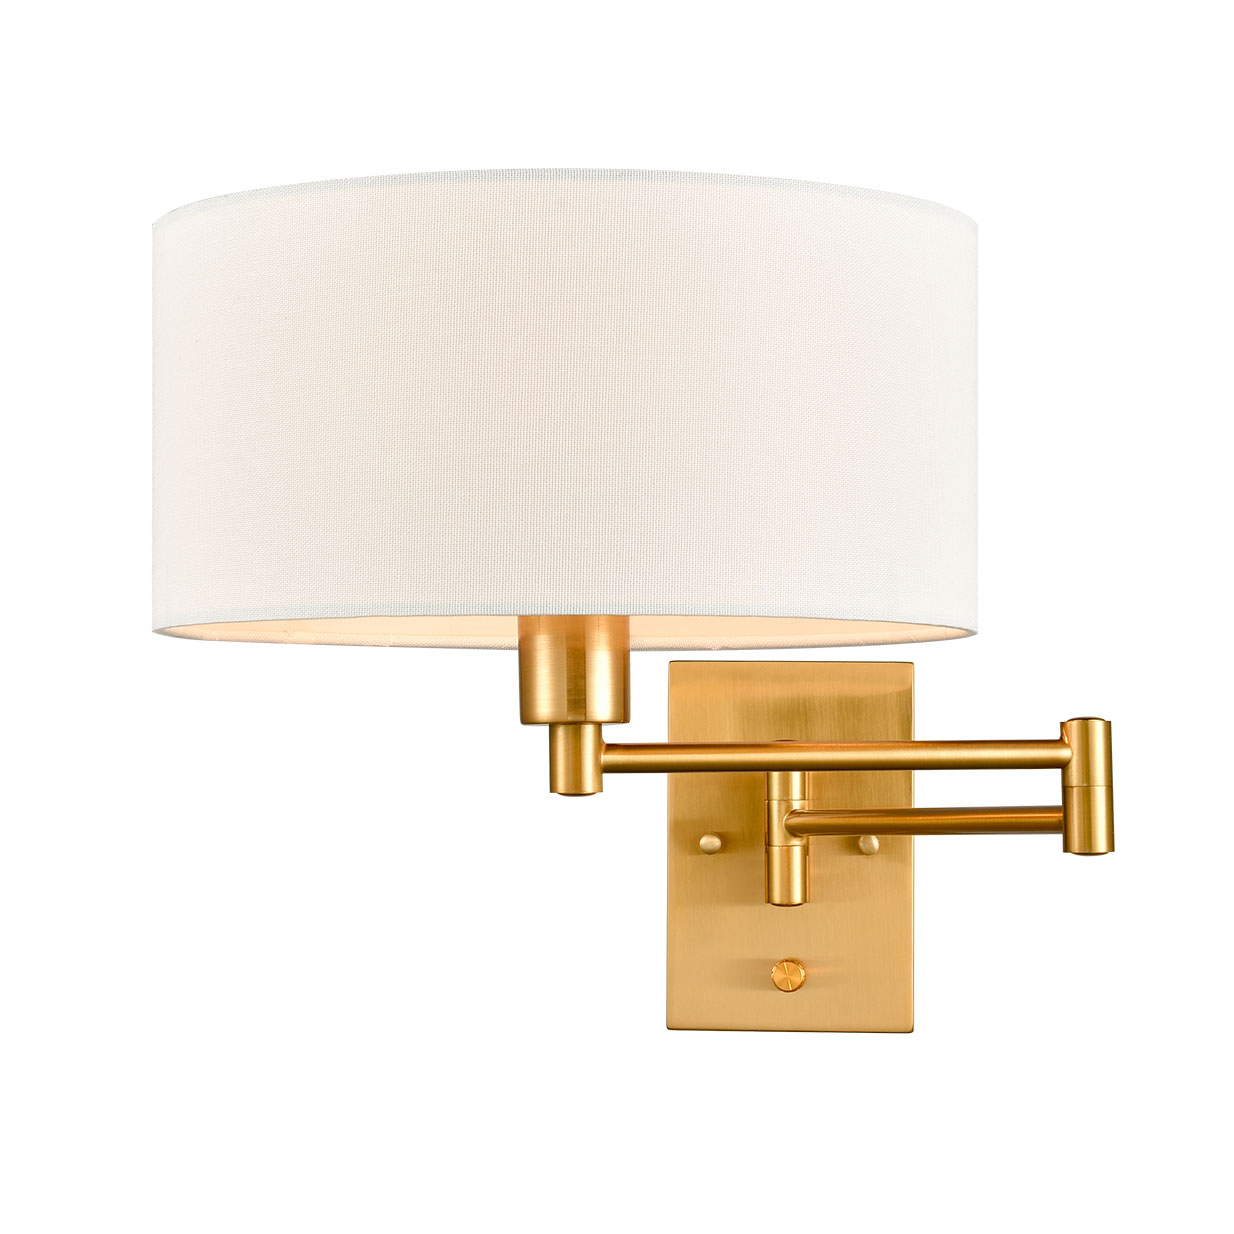 Farmhouse-Traditional-Swing-Arm-Wall-Lamps-Fabric-Shade-Brass-Finish